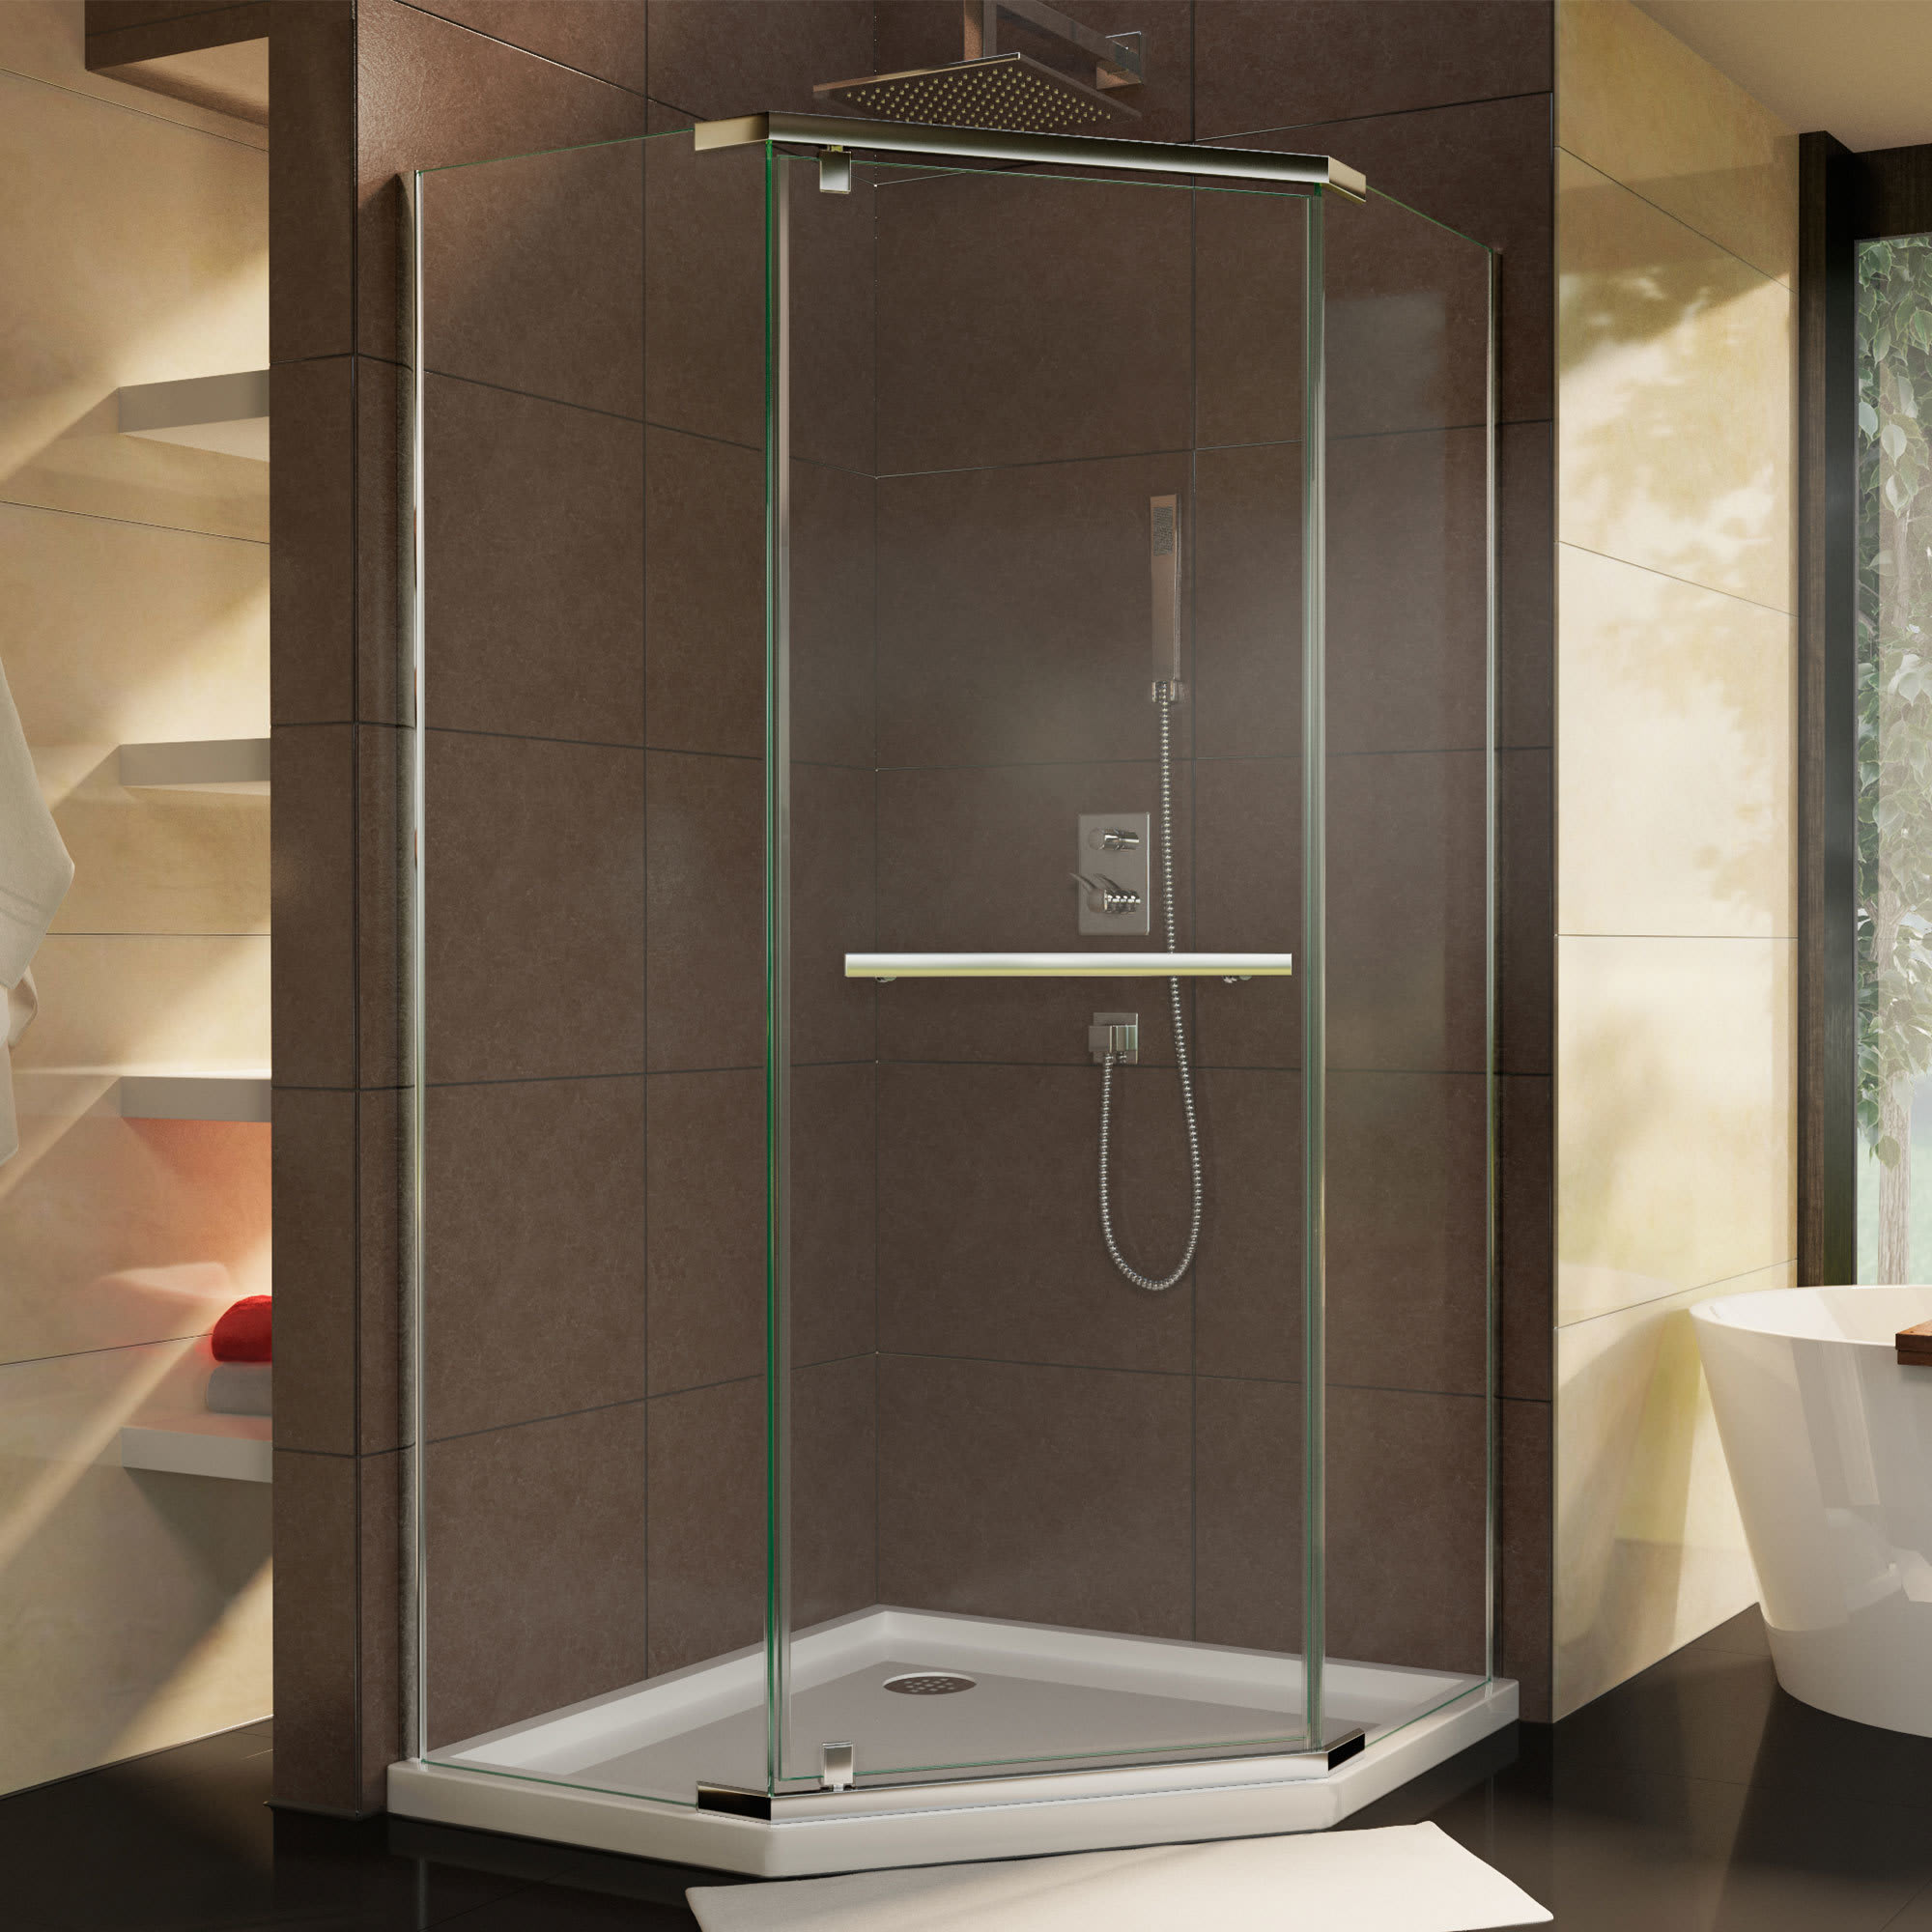 Dreamline Shen 2134340 01 Prism 34 1 8 Neo Angle Shower Enclosure